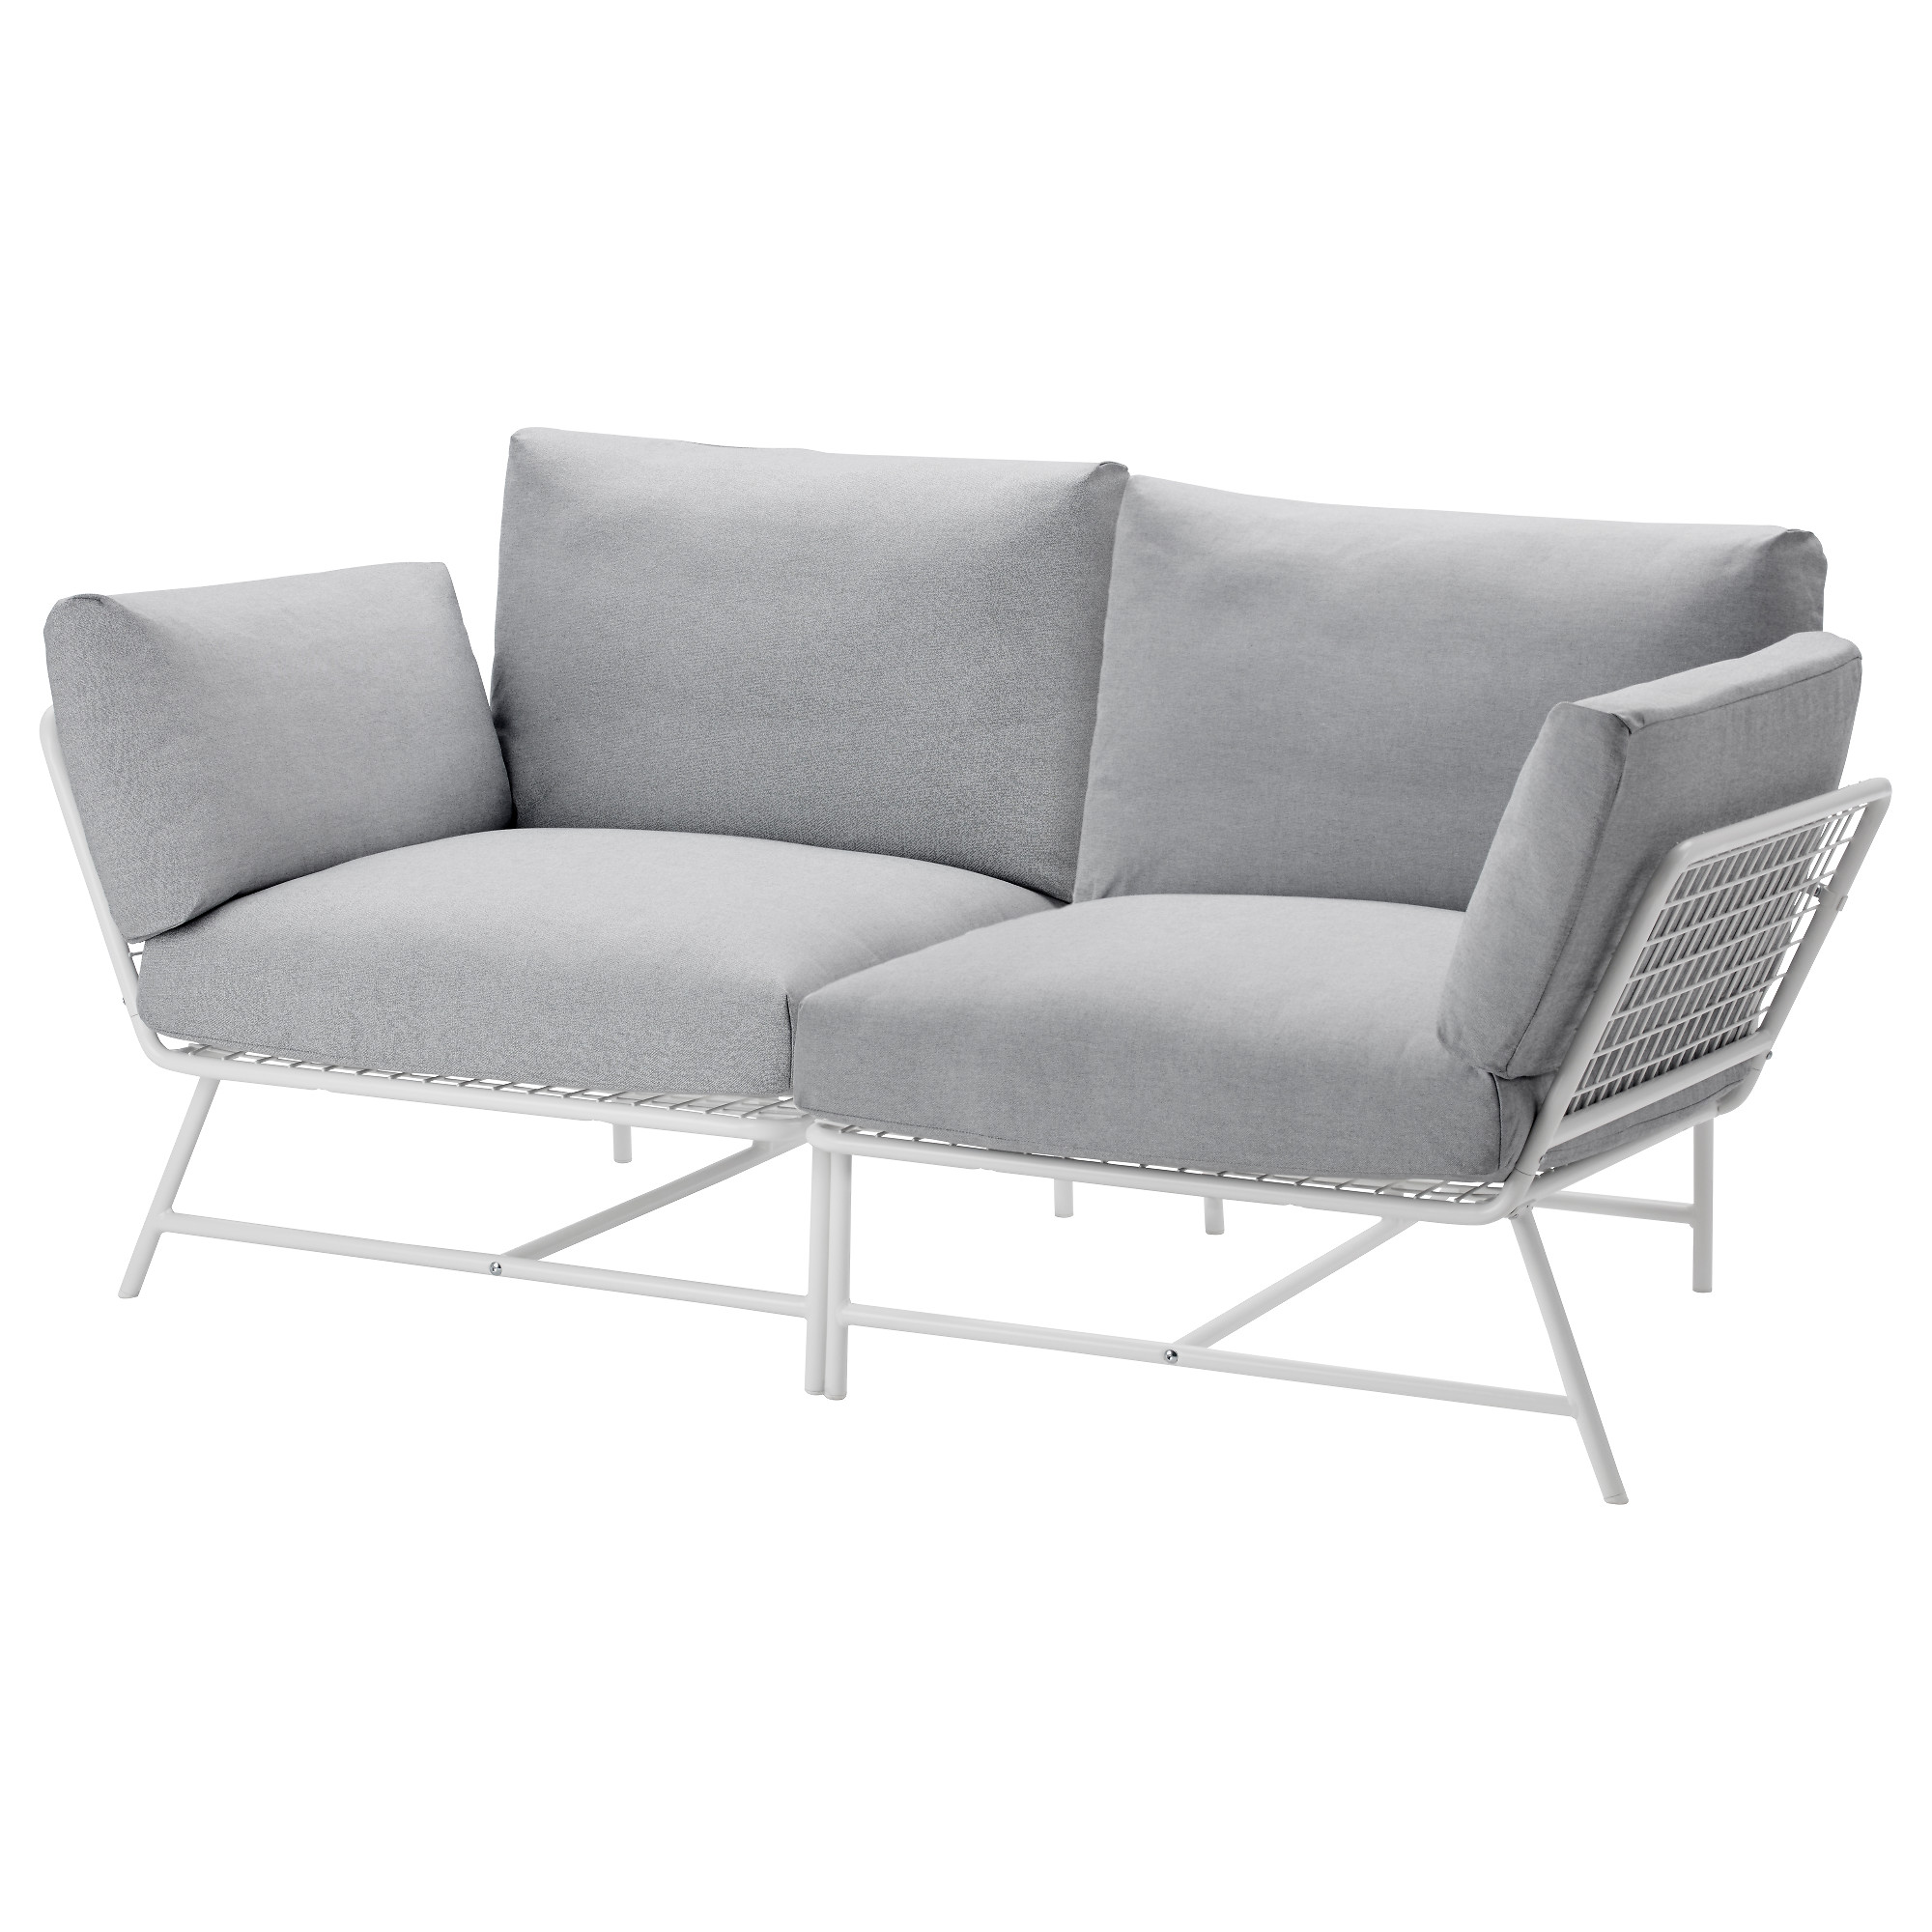 fabric loveseats  ikea - ikea ps  loveseat white gray height including back cushions